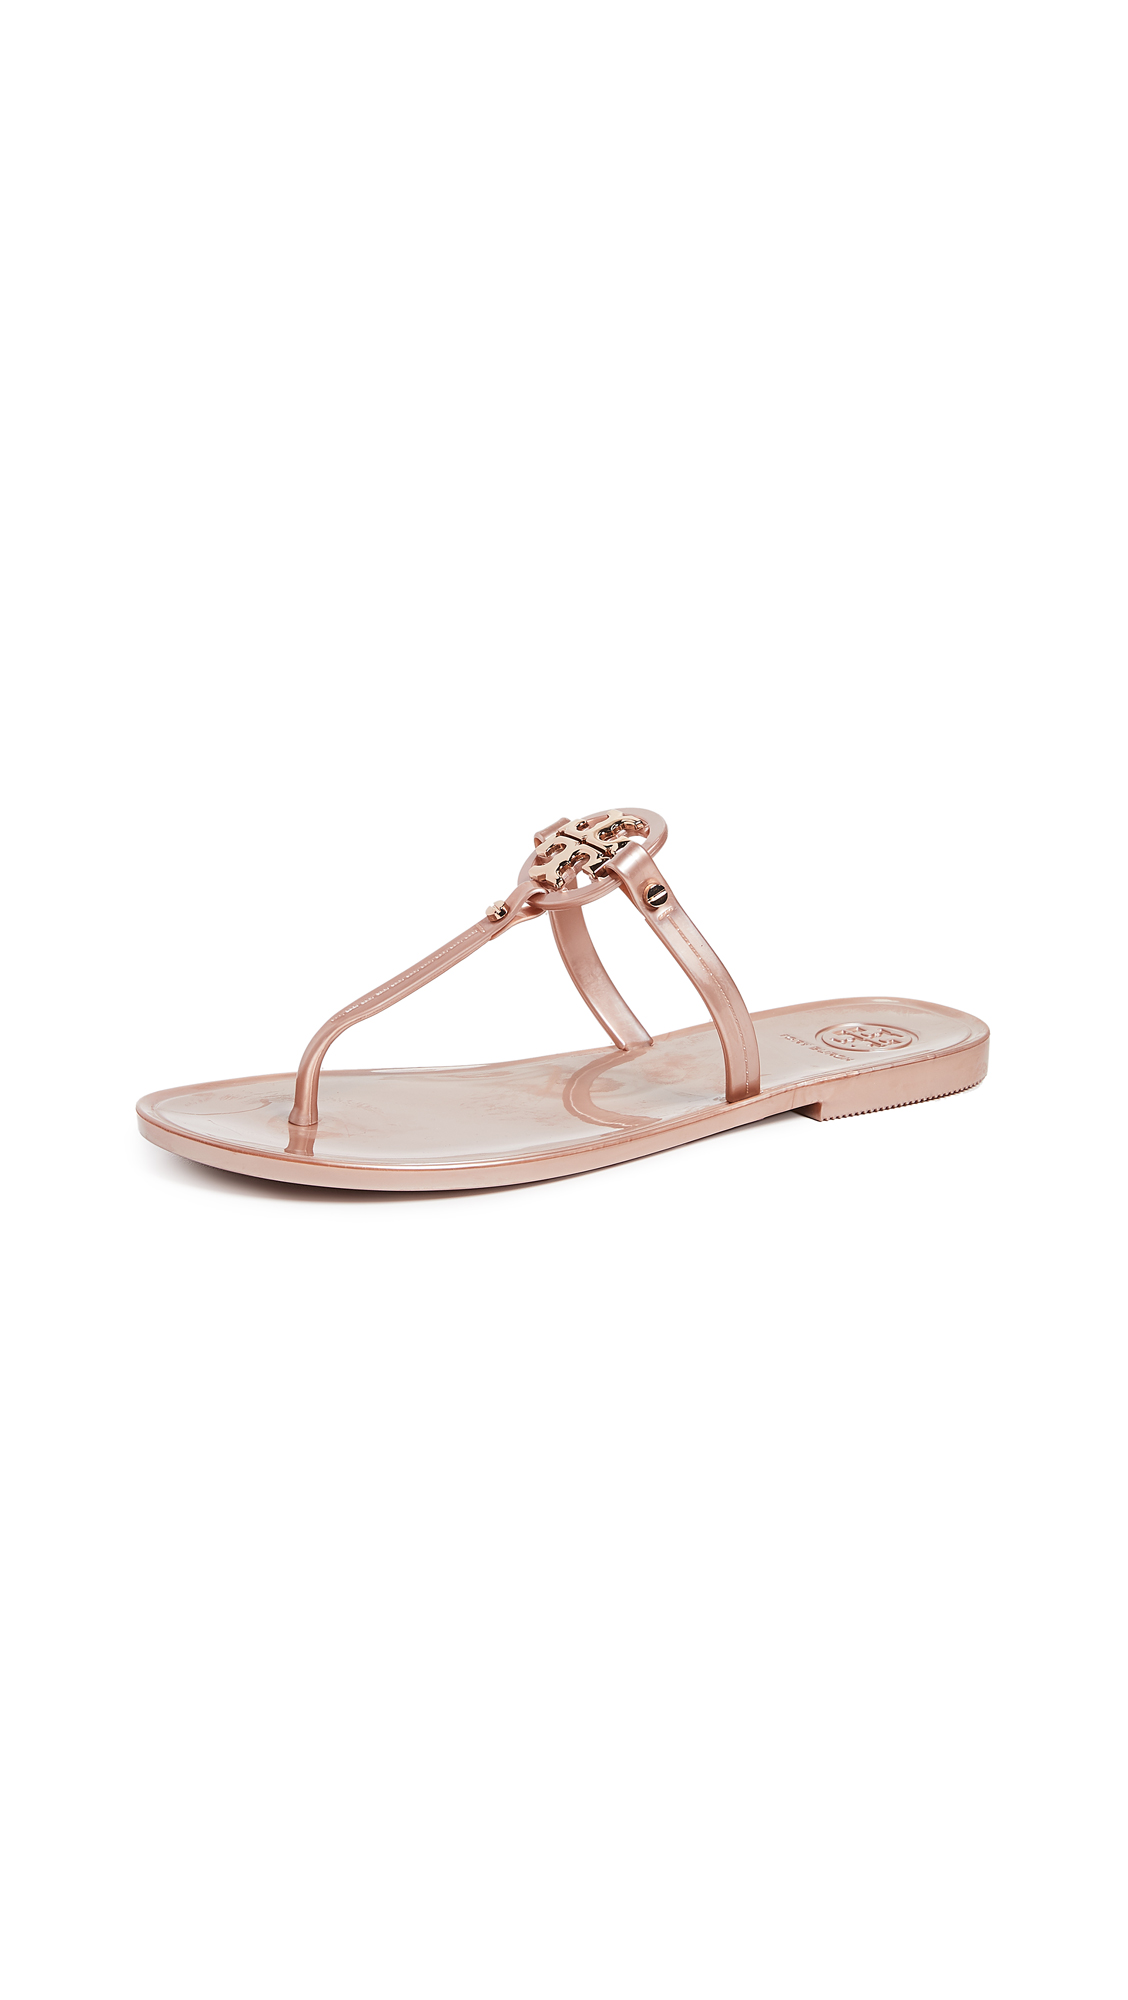 Tory Burch Mini Miller Flat Thong Sandals - Rose Gold